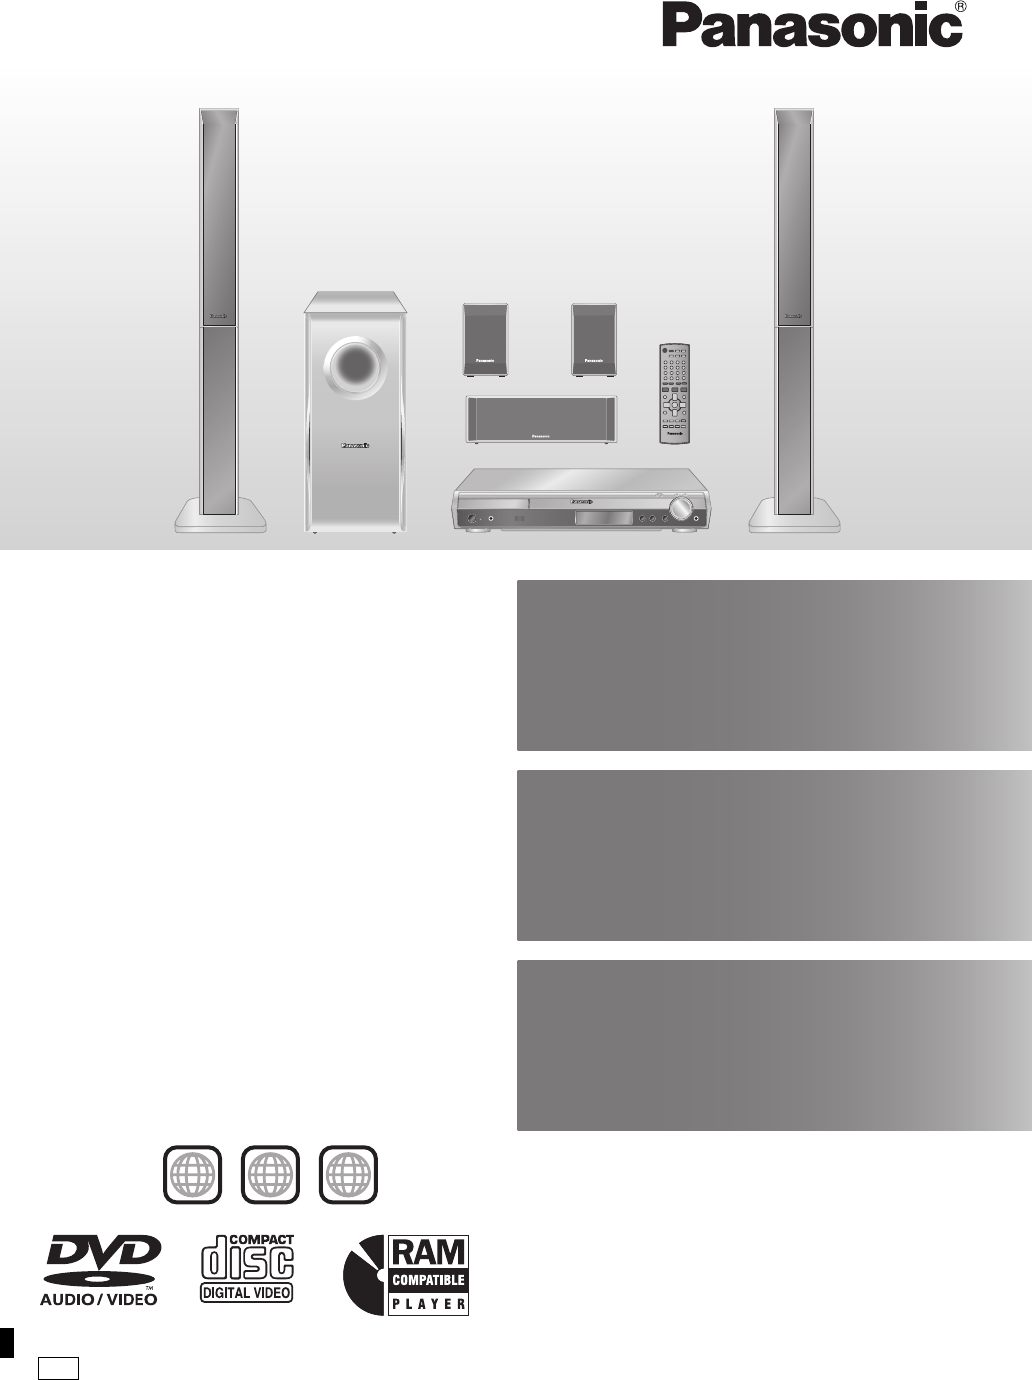 panasonic home theater system sc ht990 user guide. Black Bedroom Furniture Sets. Home Design Ideas